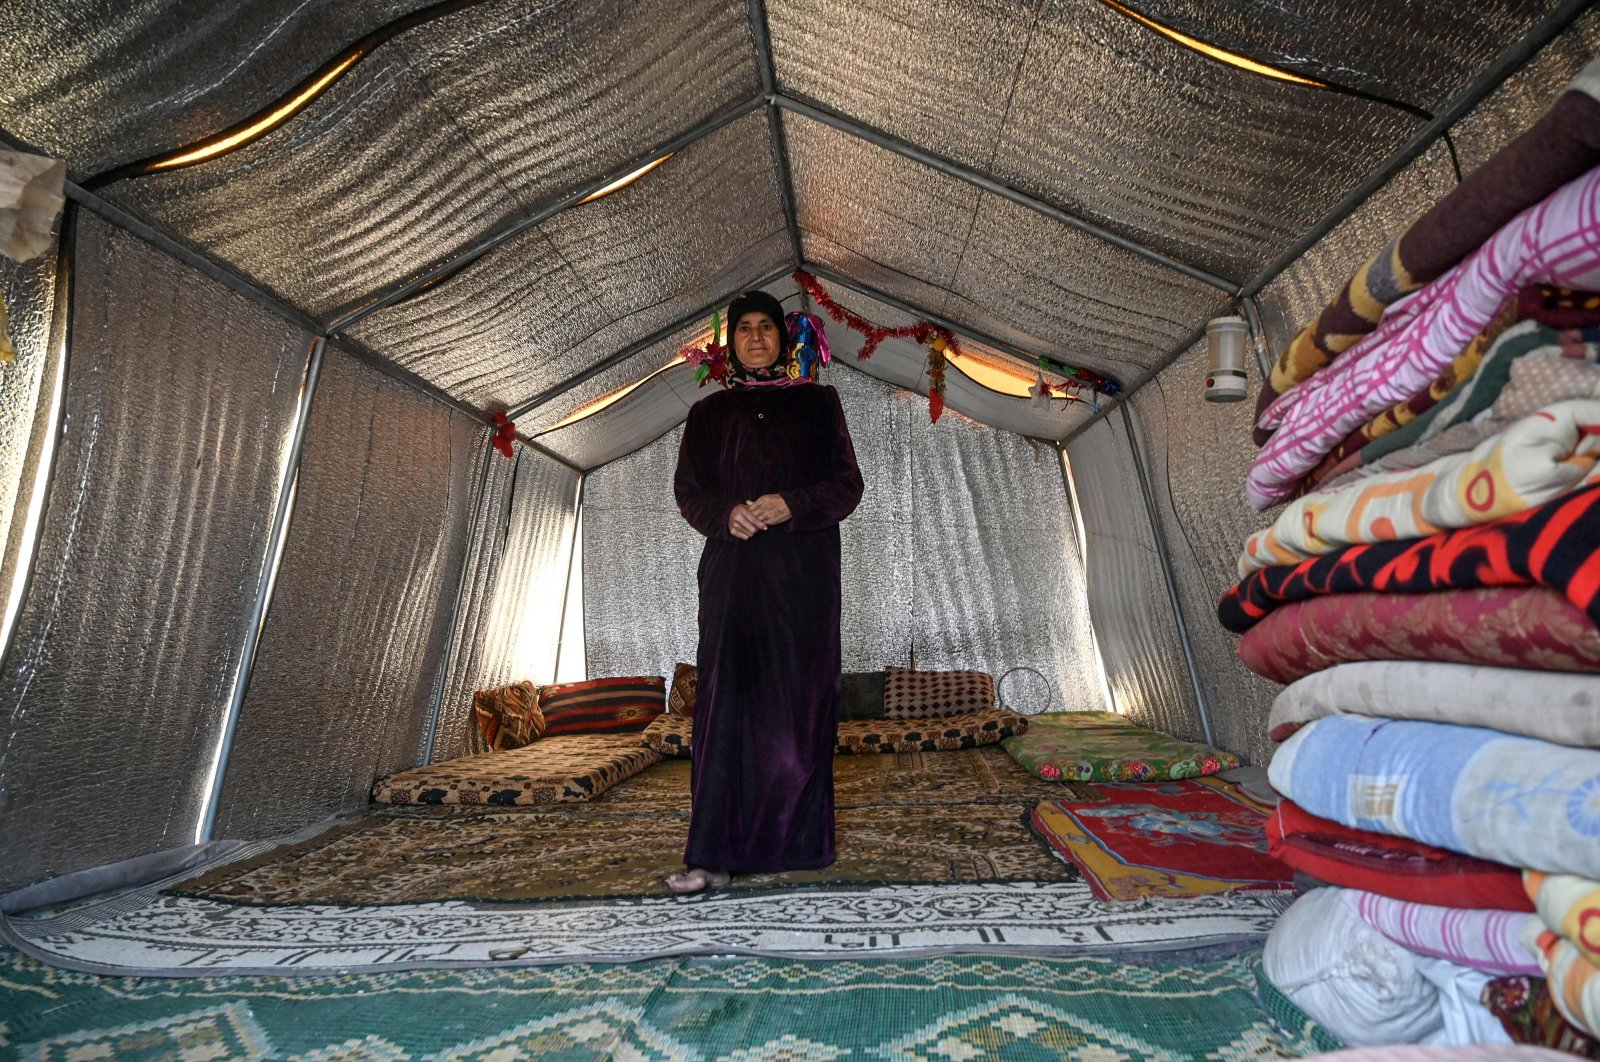 Noora al-Ali, ais pictured in her new concrete home at a camp created by Turkey's Humanitarian Relief Foundation (IHH) near Kafr Lusin on the border with Turkey in Syria's northwestern province of Idlib, March 10, 2020. (AFP)